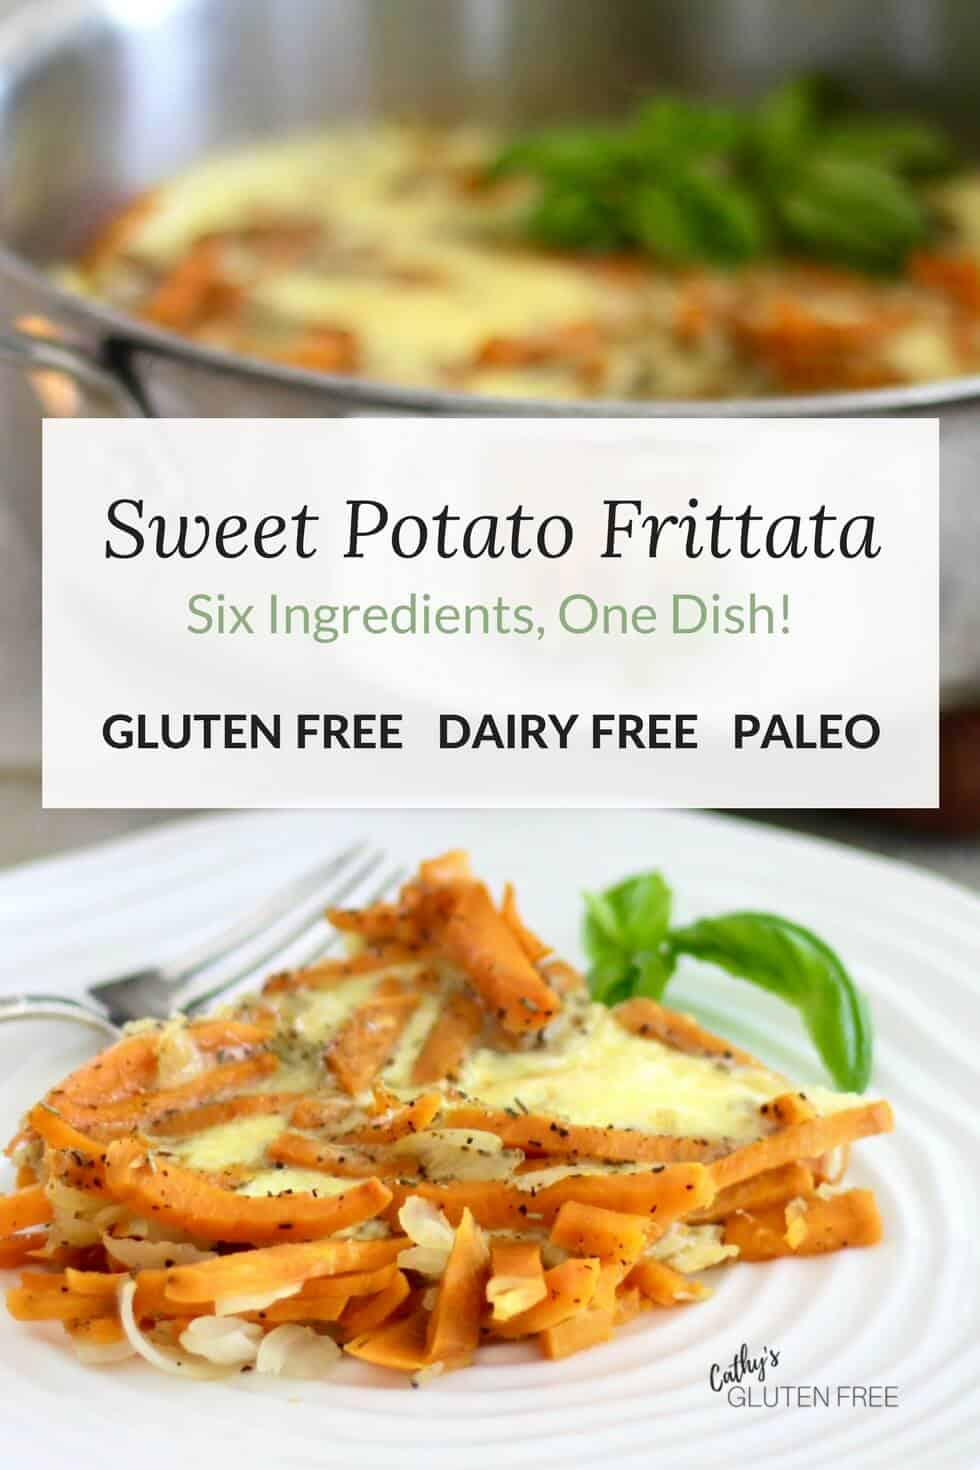 Sweet Potato Frittata is quick and easy to make and tastes delicious!